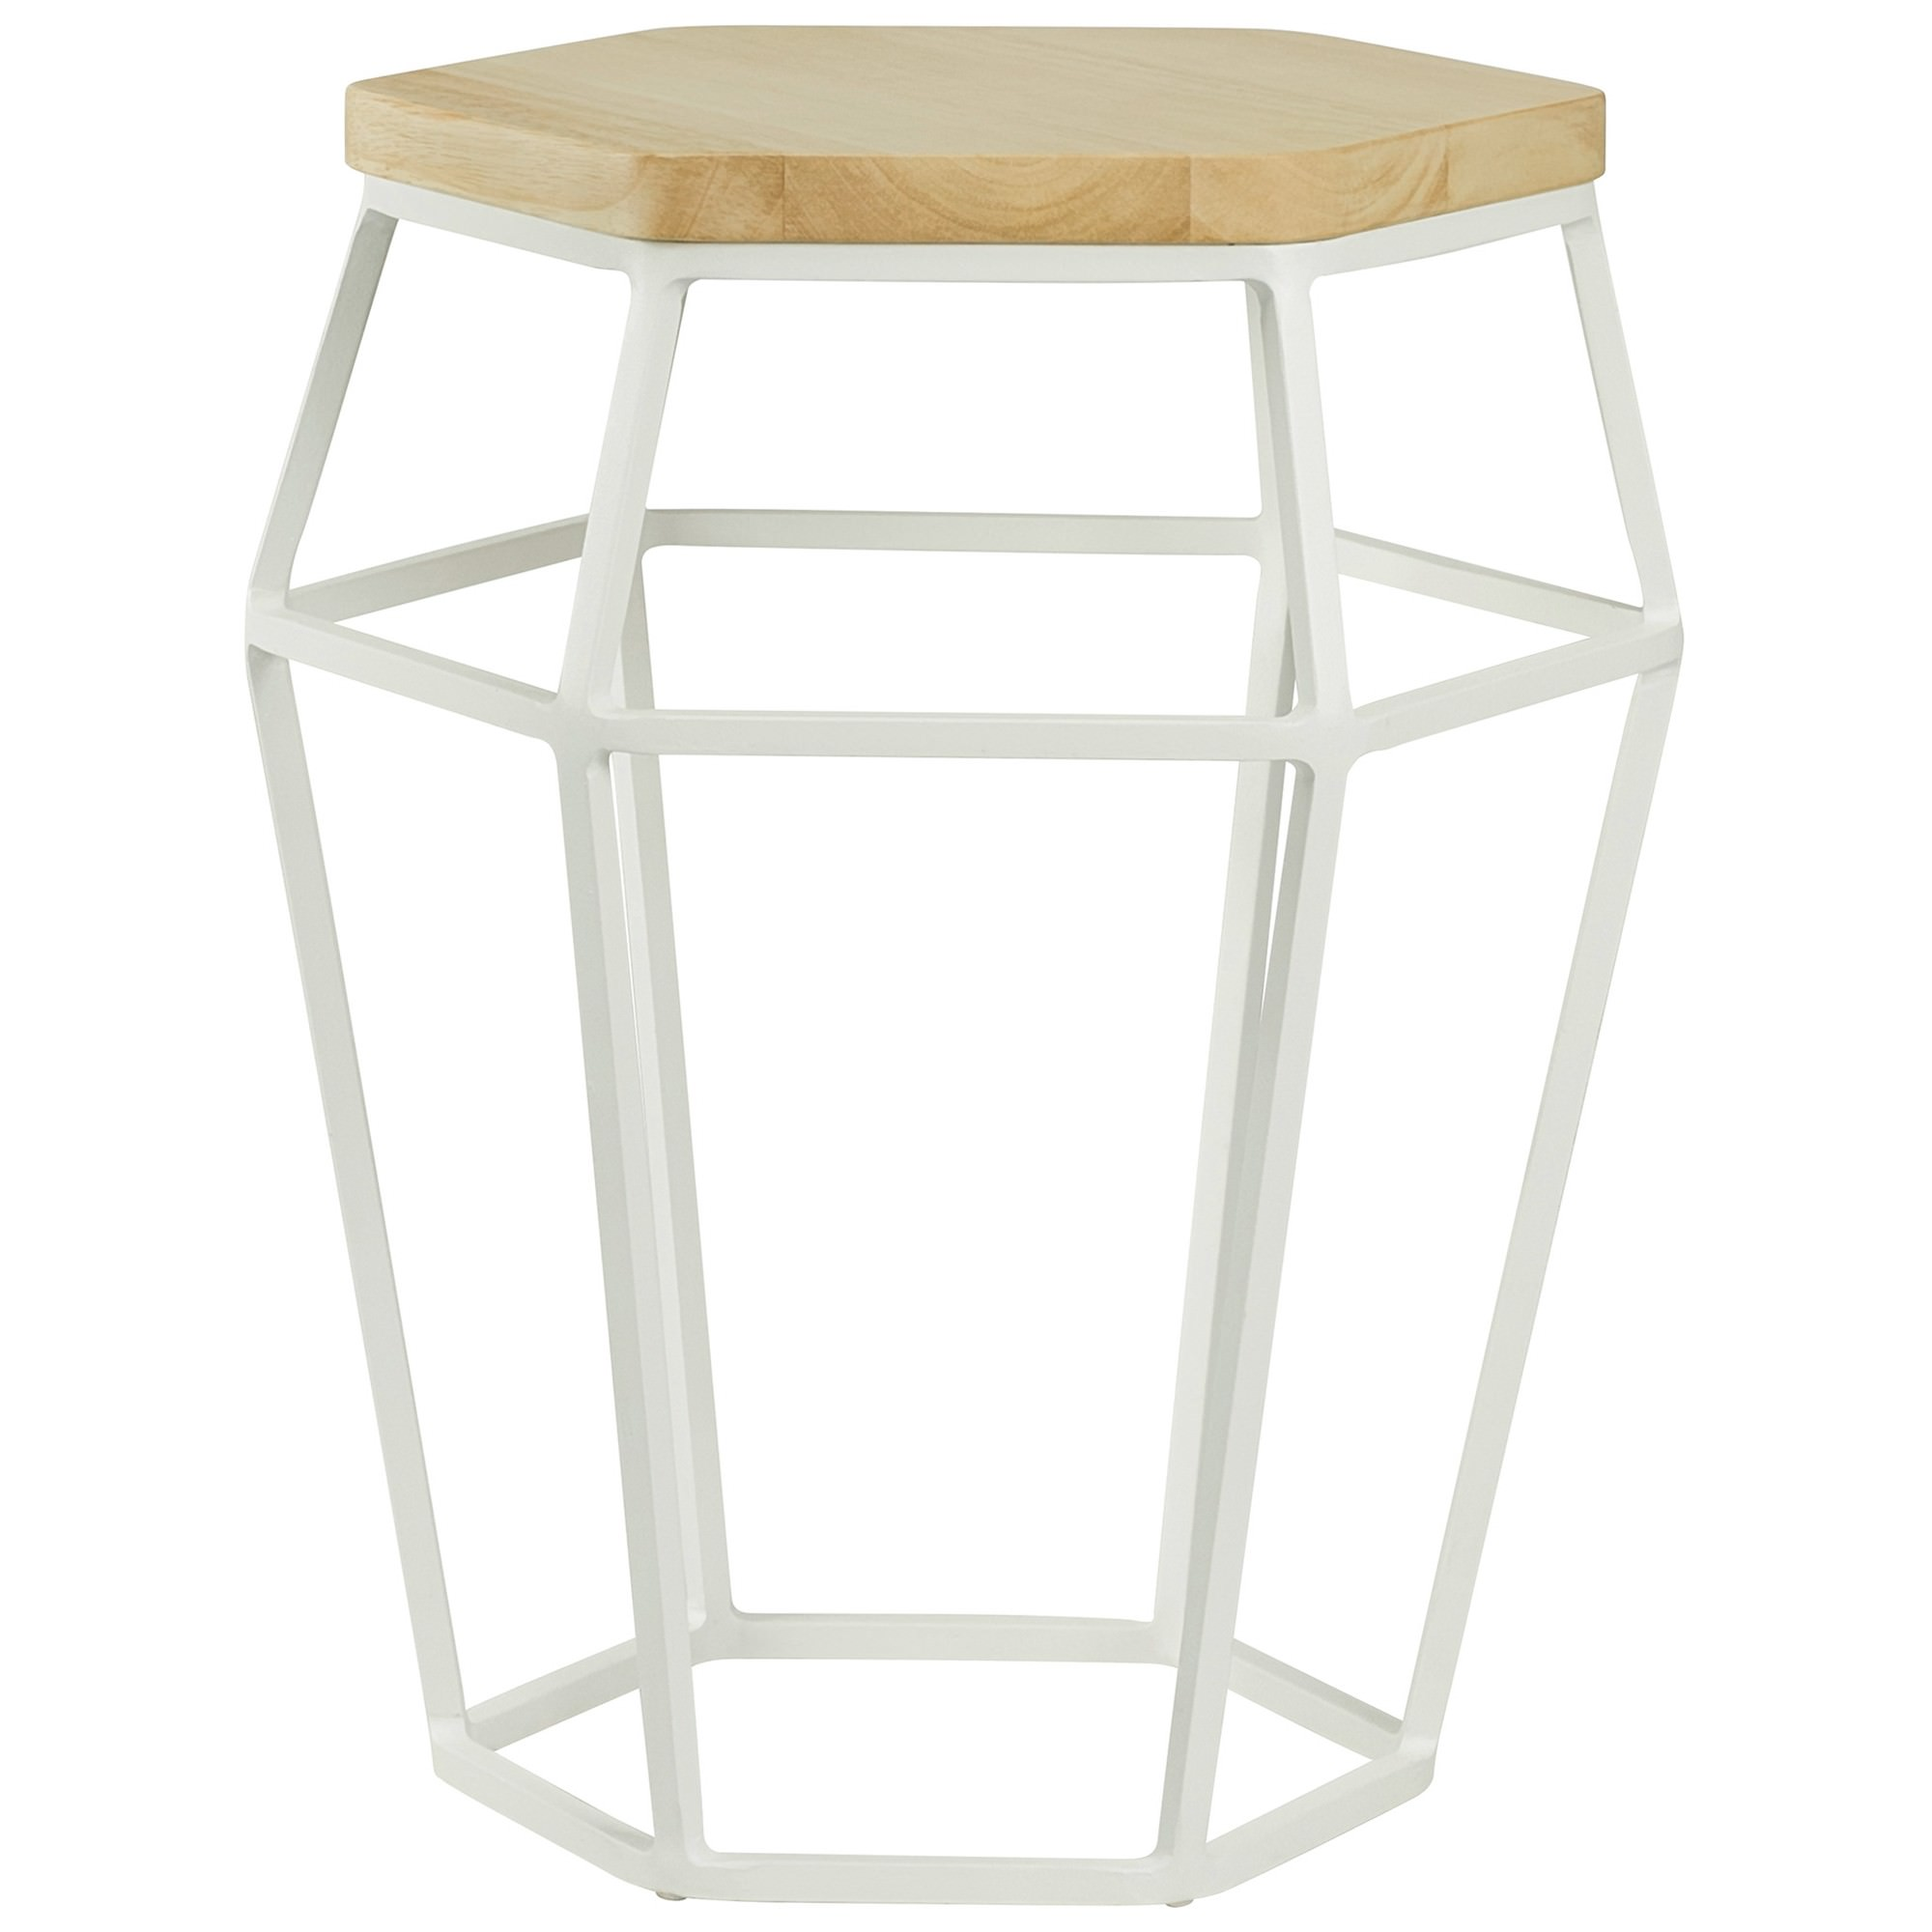 Ford Oak Timber Topped Metal Side Table / Stool, Oak / White